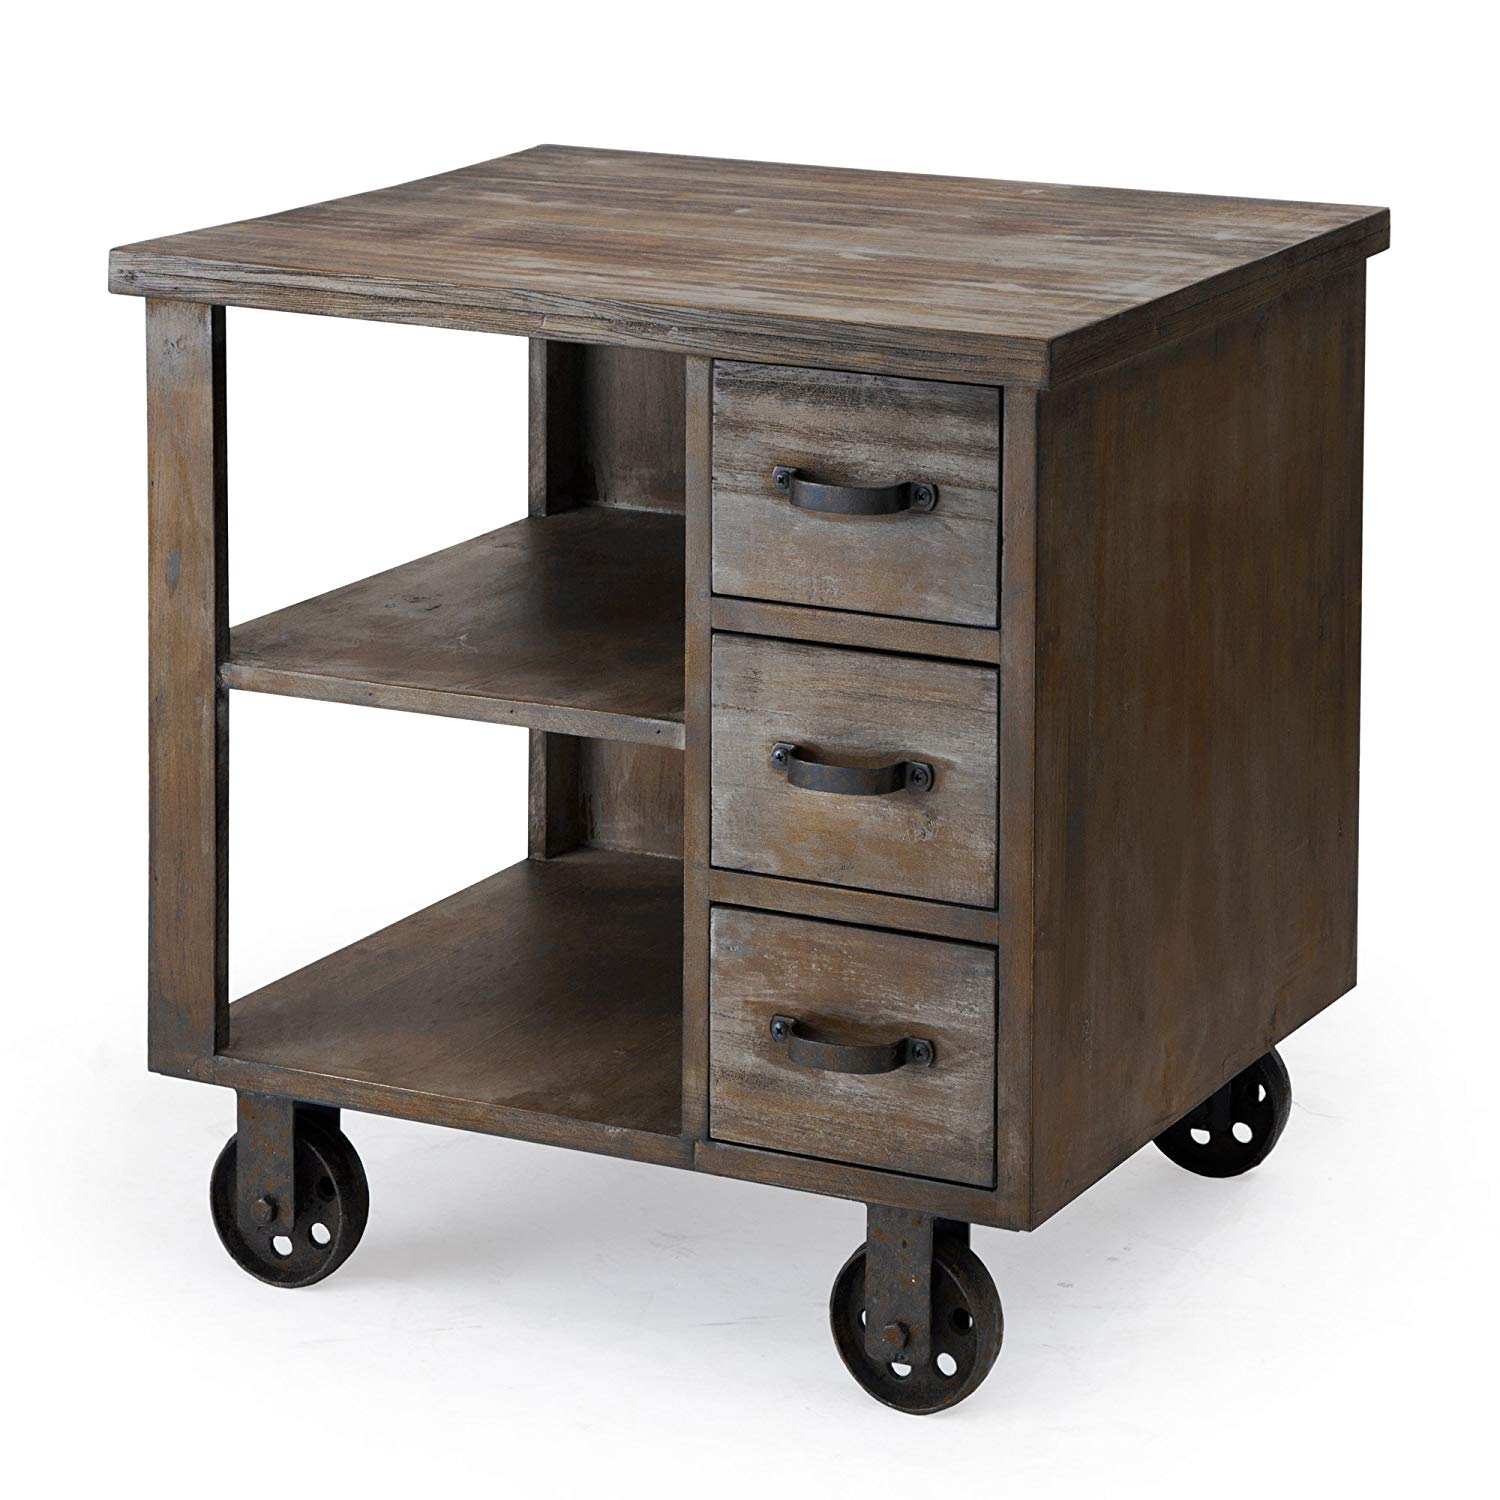 madison park cirque accent end table non moveable tables wheels kitchen dining target kids desk turquoise dresser worlds away sun umbrella astoria grand bedroom furniture marble